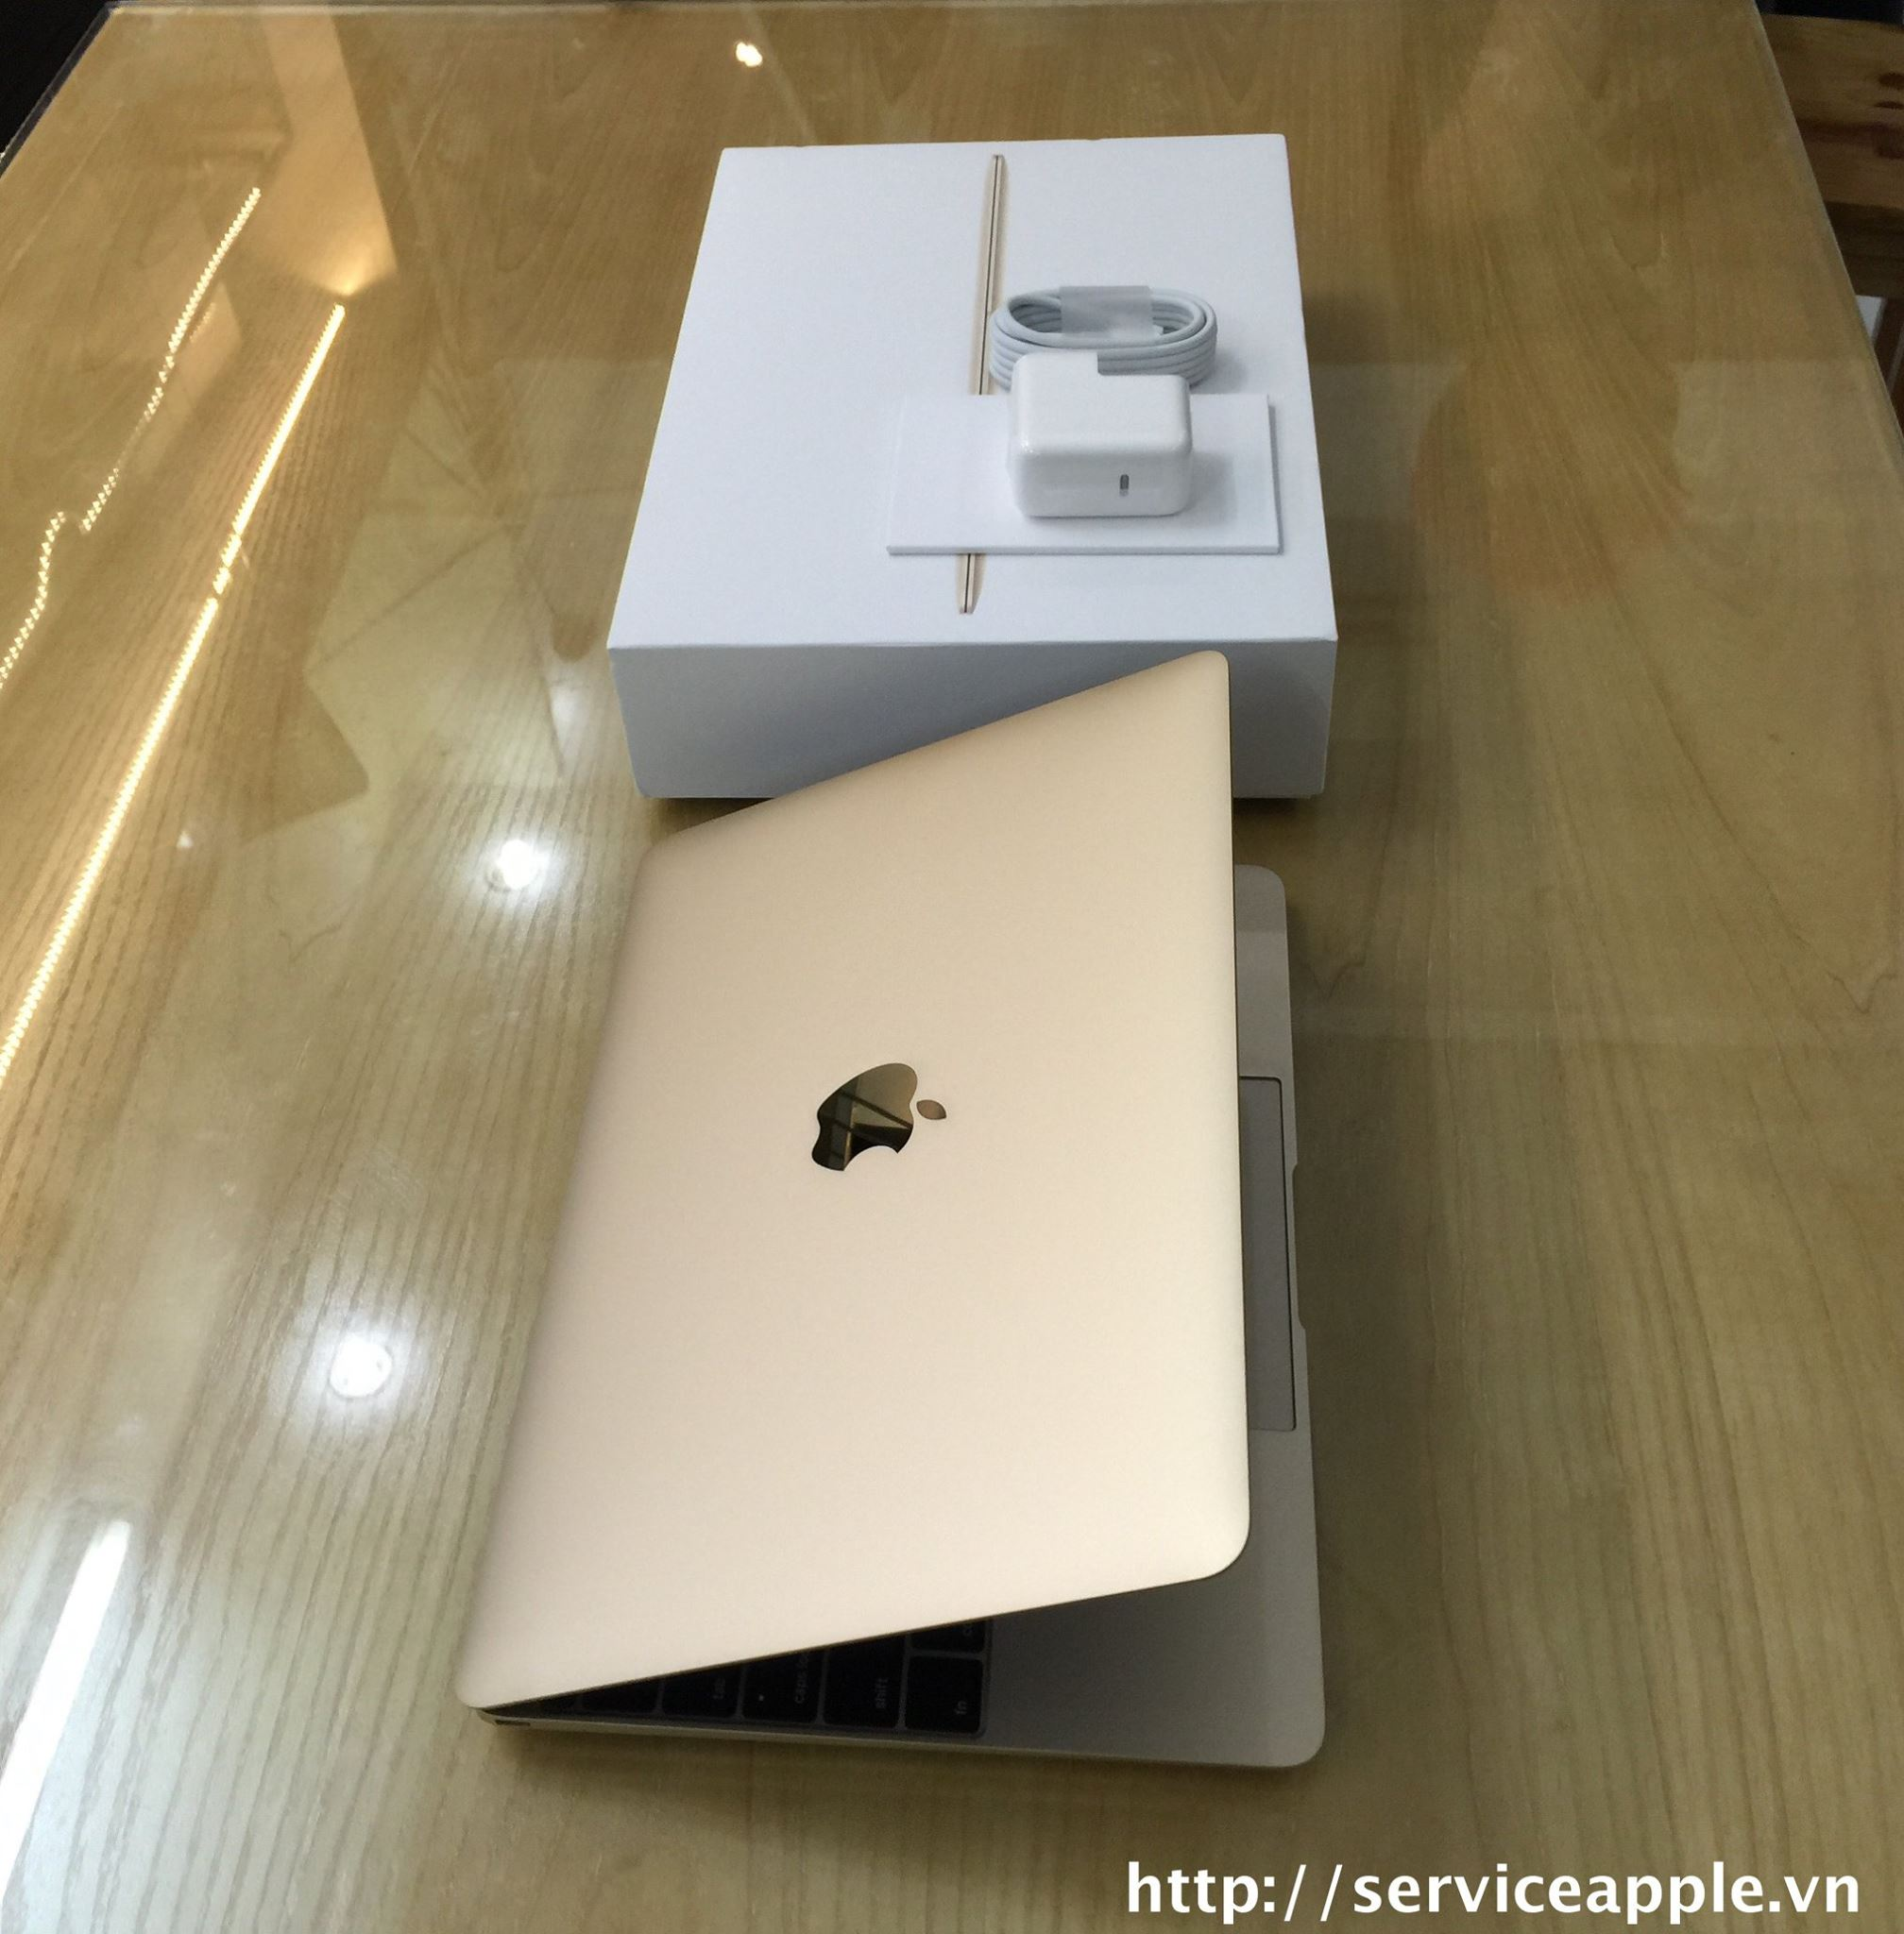 Apple Macbook  MJY32 12inch Glod _3.jpg